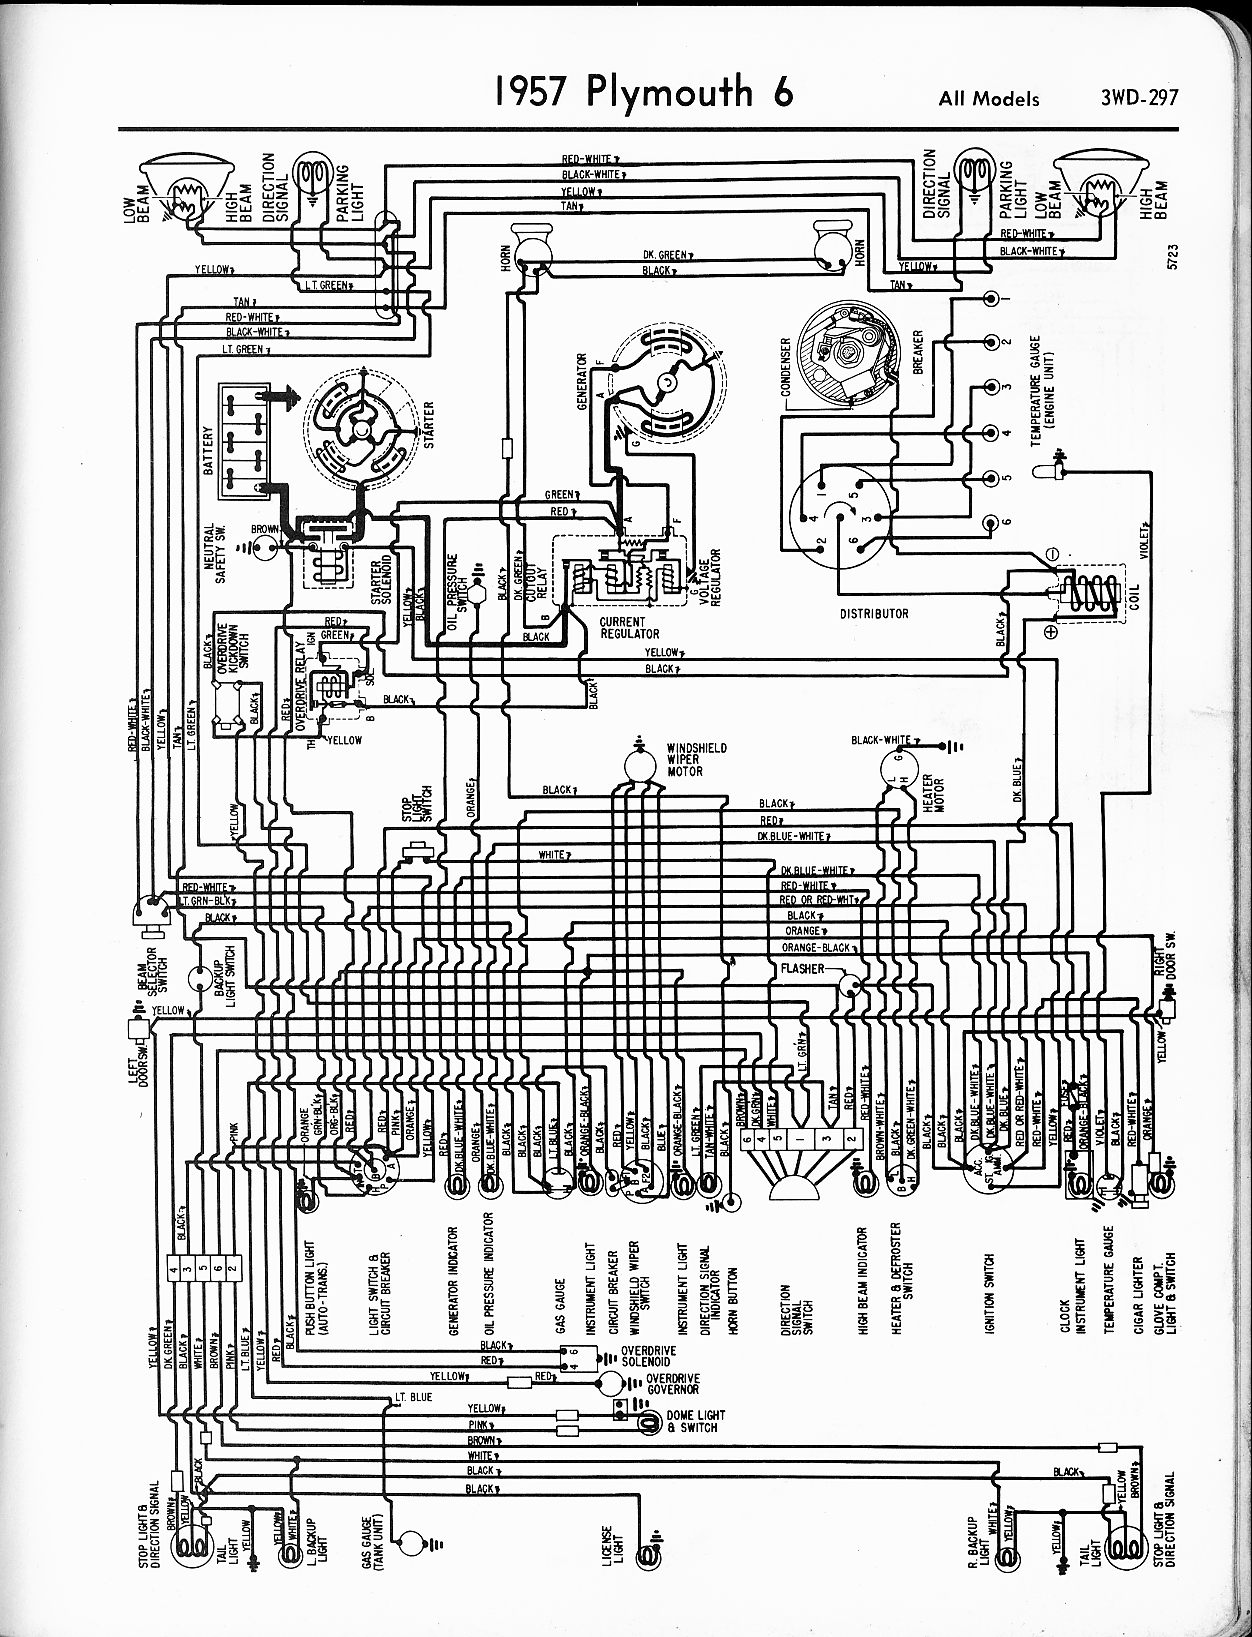 Cuda Wiring Diagram on 70 charger wiring diagram, 61 impala wiring diagram, 71 cuda wiper motor, 70 cuda wiring diagram, 67 camaro wiring diagram, 68 charger wiring diagram, 1967 pontiac gto wiring diagram, 71 cuda rear suspension,